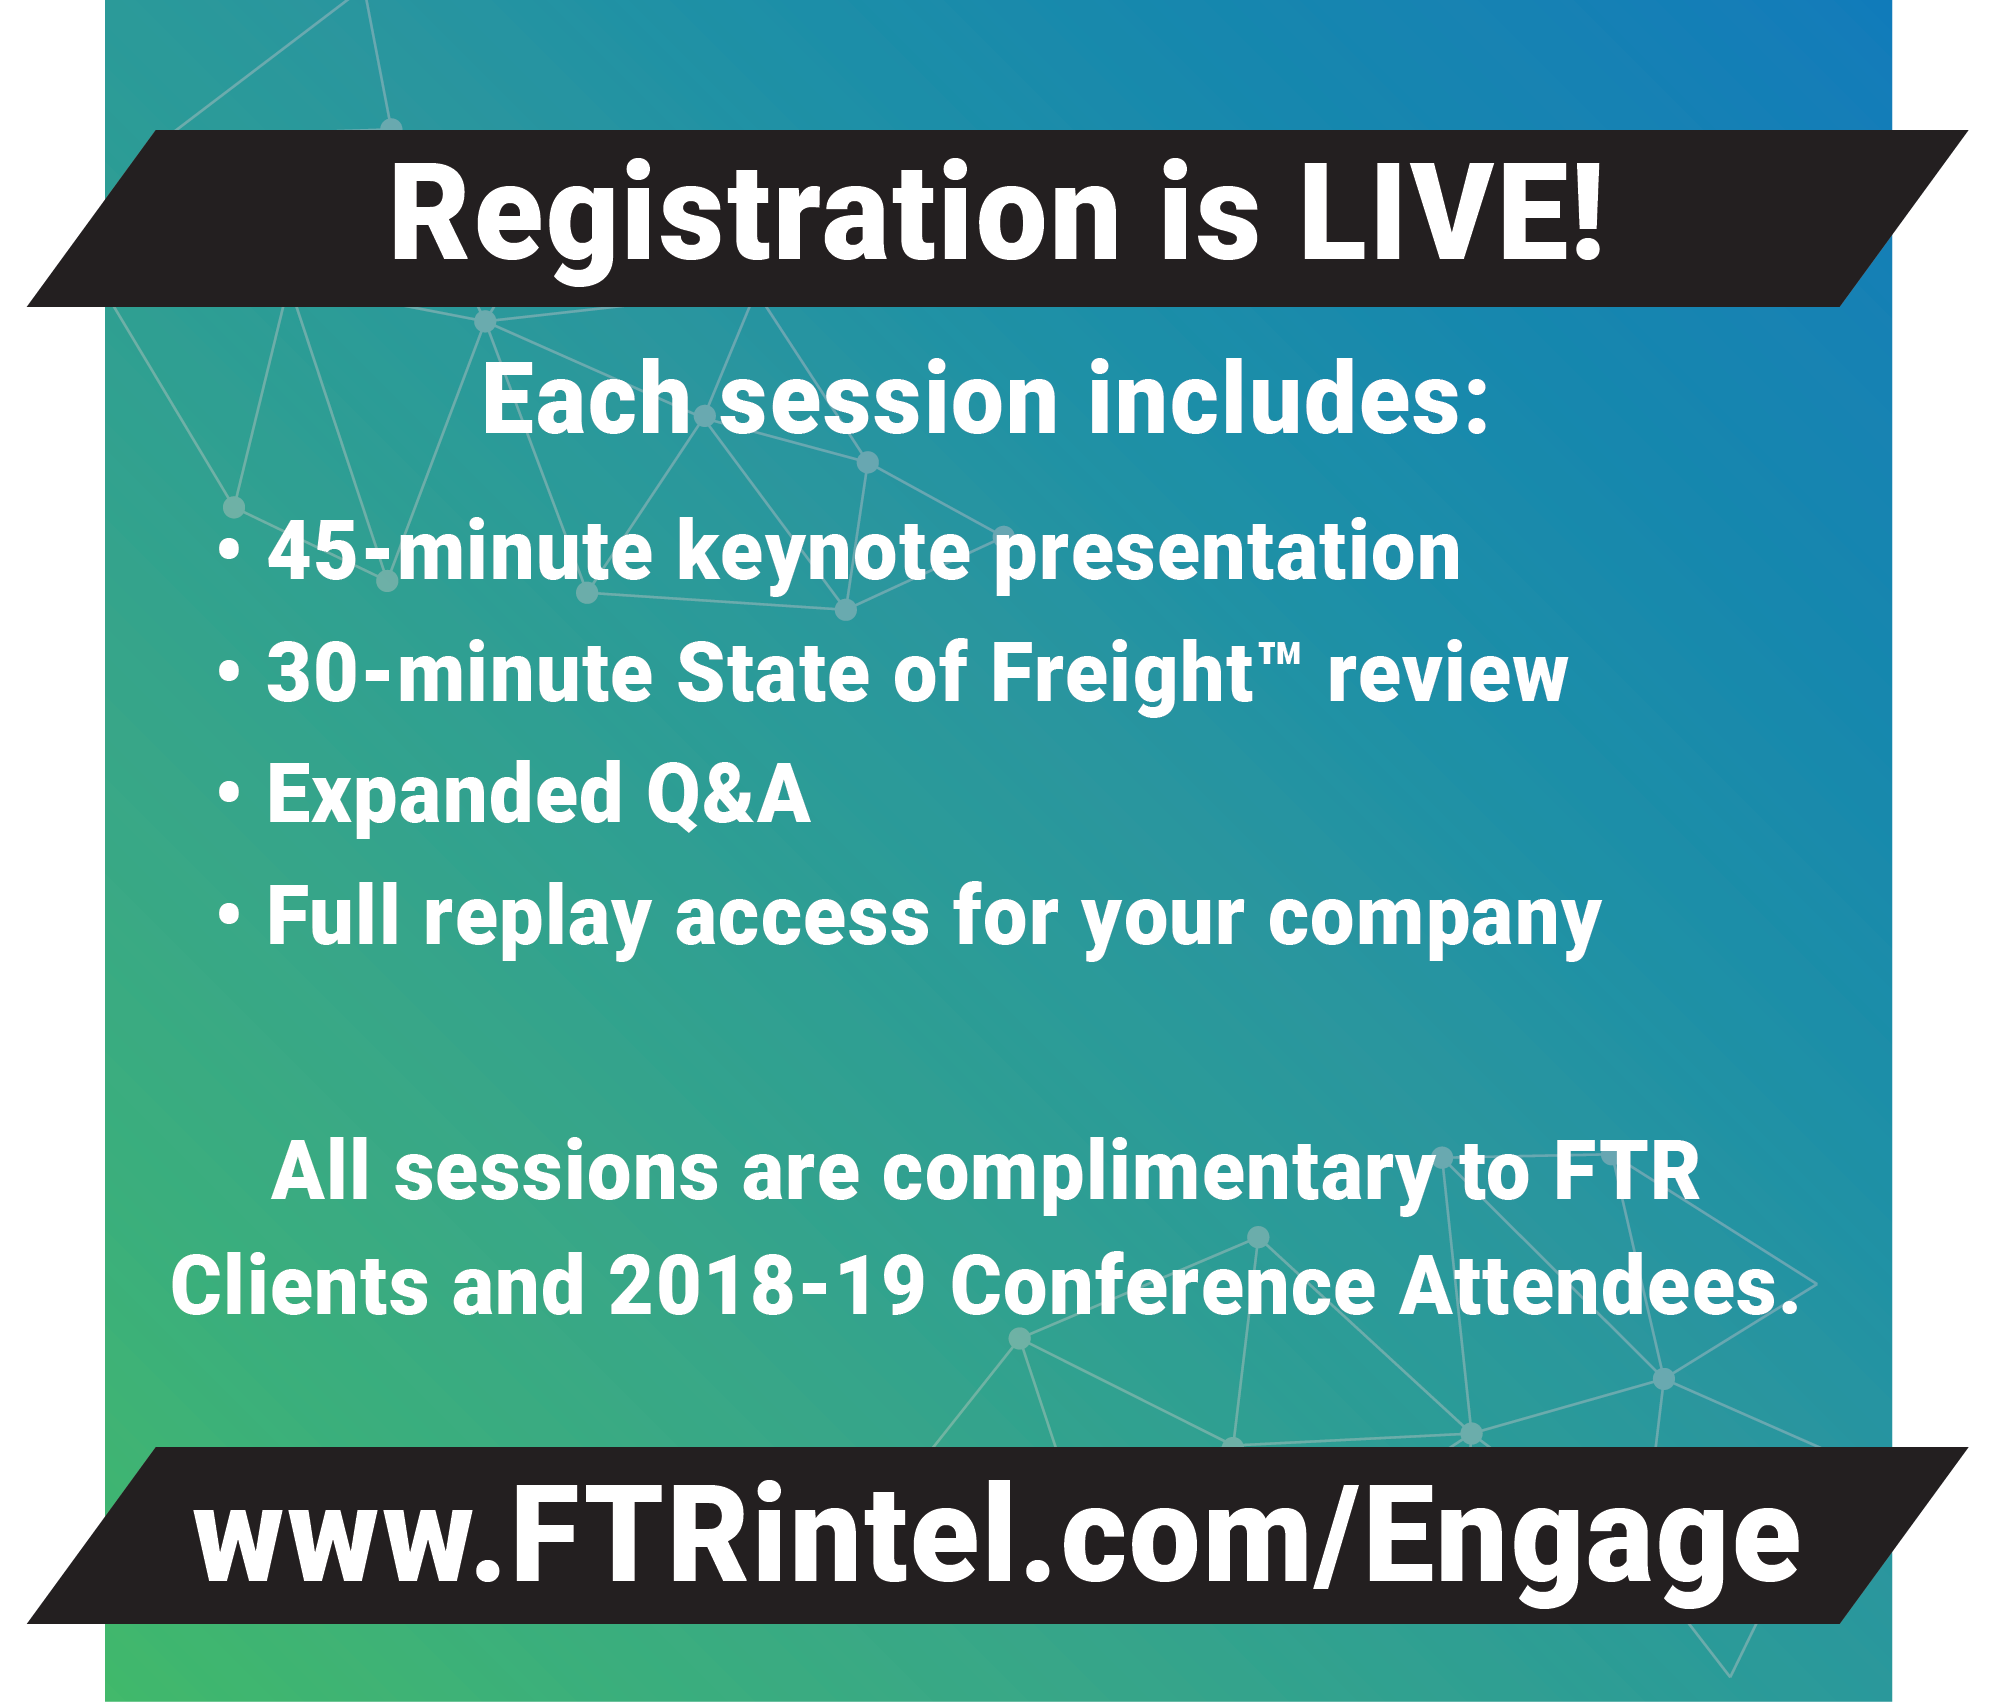 Registration is Live - visit www.FTRintel.com/Engage